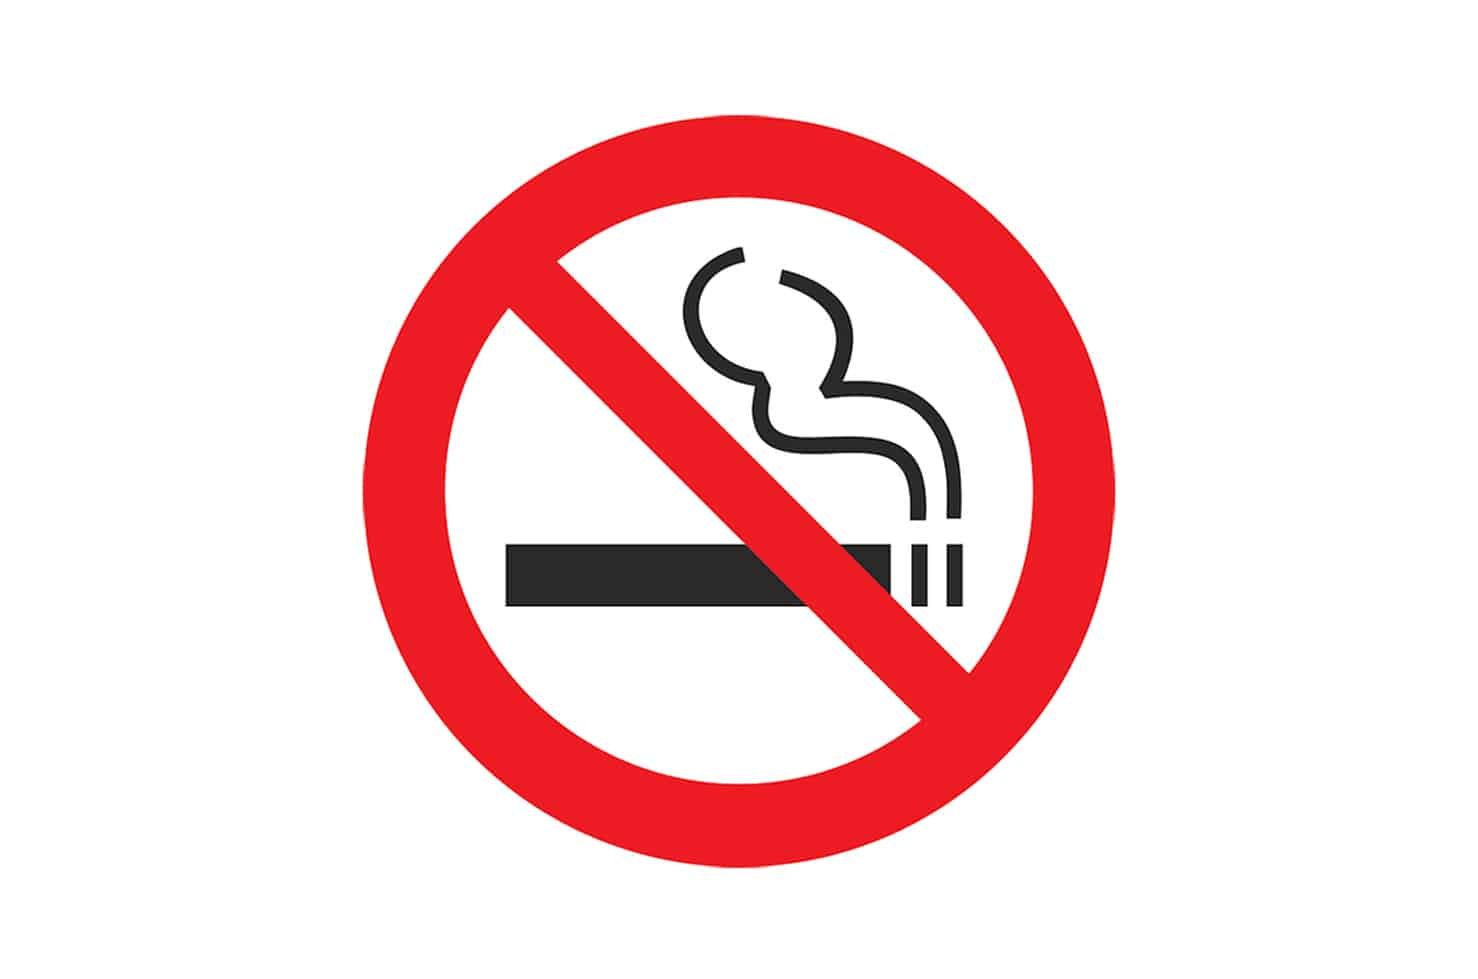 For your comfort and safety, BBB's office and all of our vehicles are non-smoking.